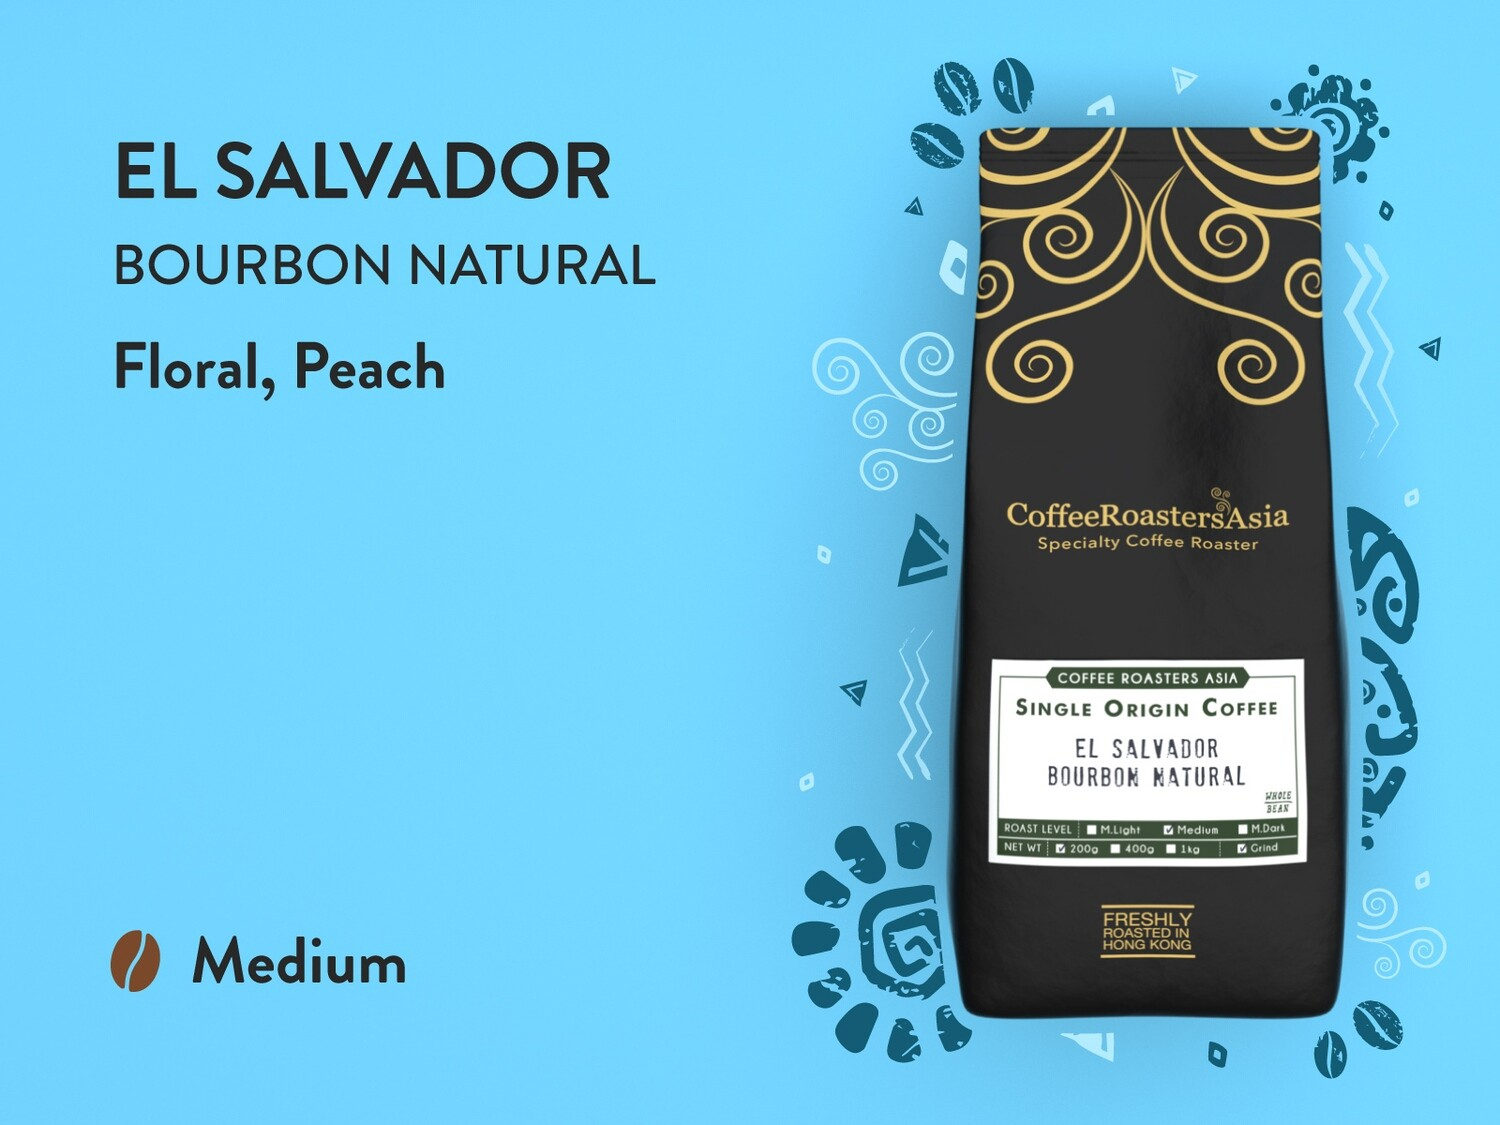 El Salvador Bourbon Natural Coffee